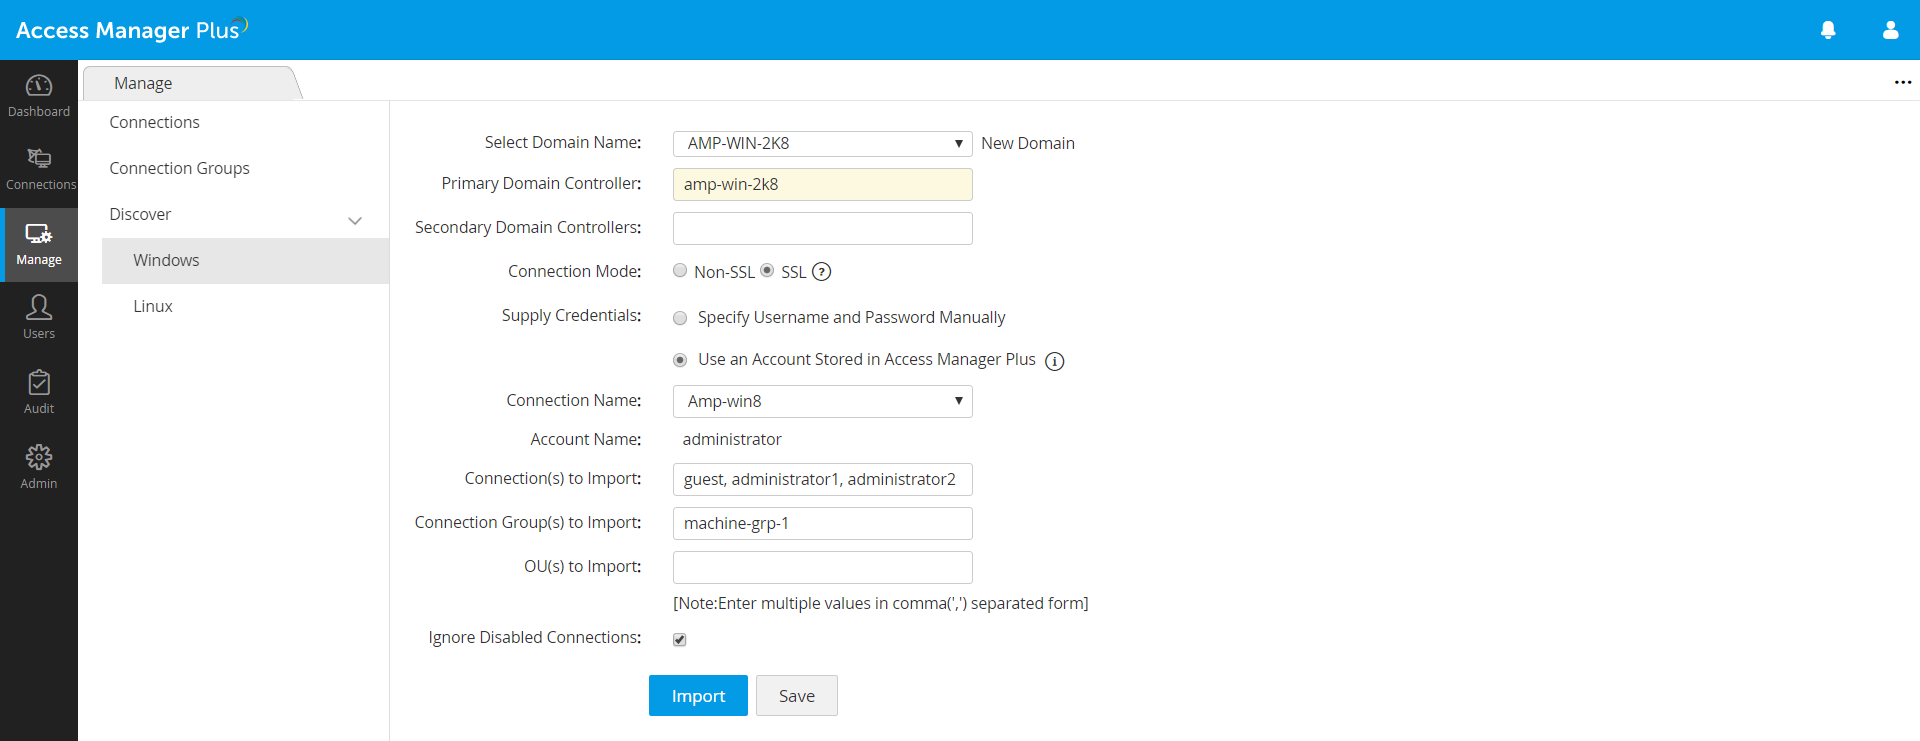 remote connections discovery in Access Manager Plus